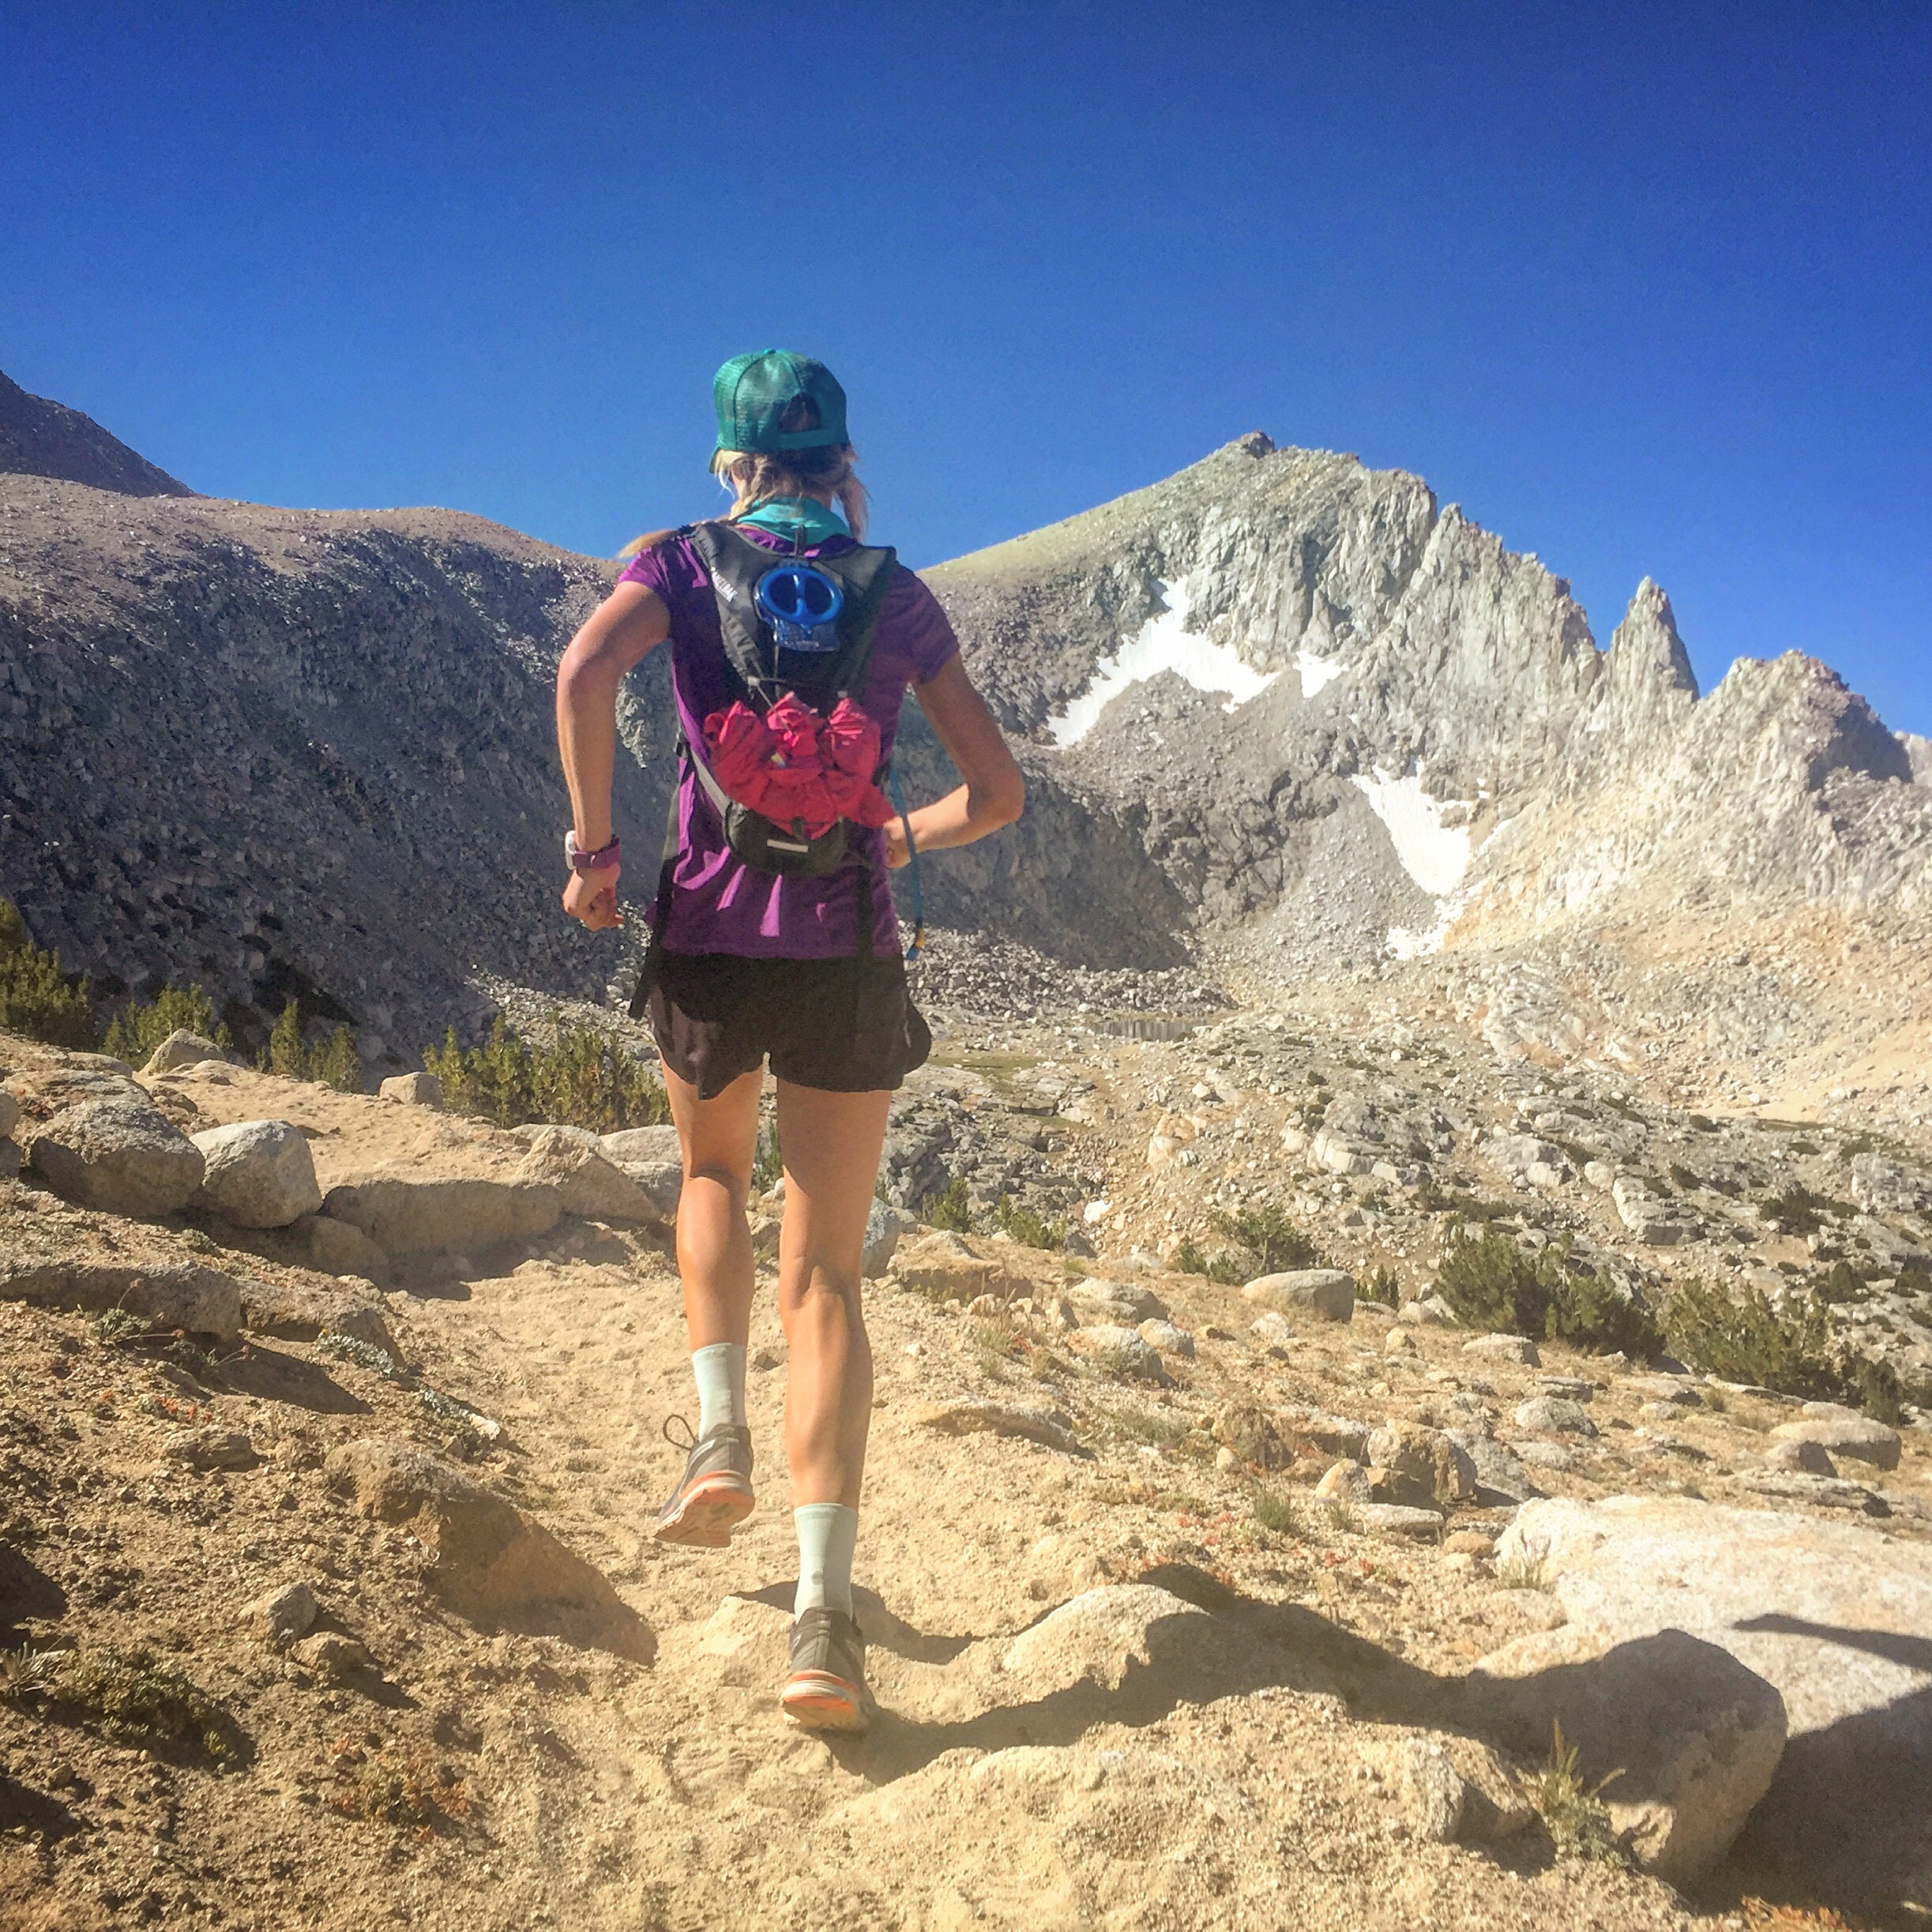 What It Takes To Run Across The Sierras: Morgan Just Ran 48 Miles Across The Sierras – Here's How